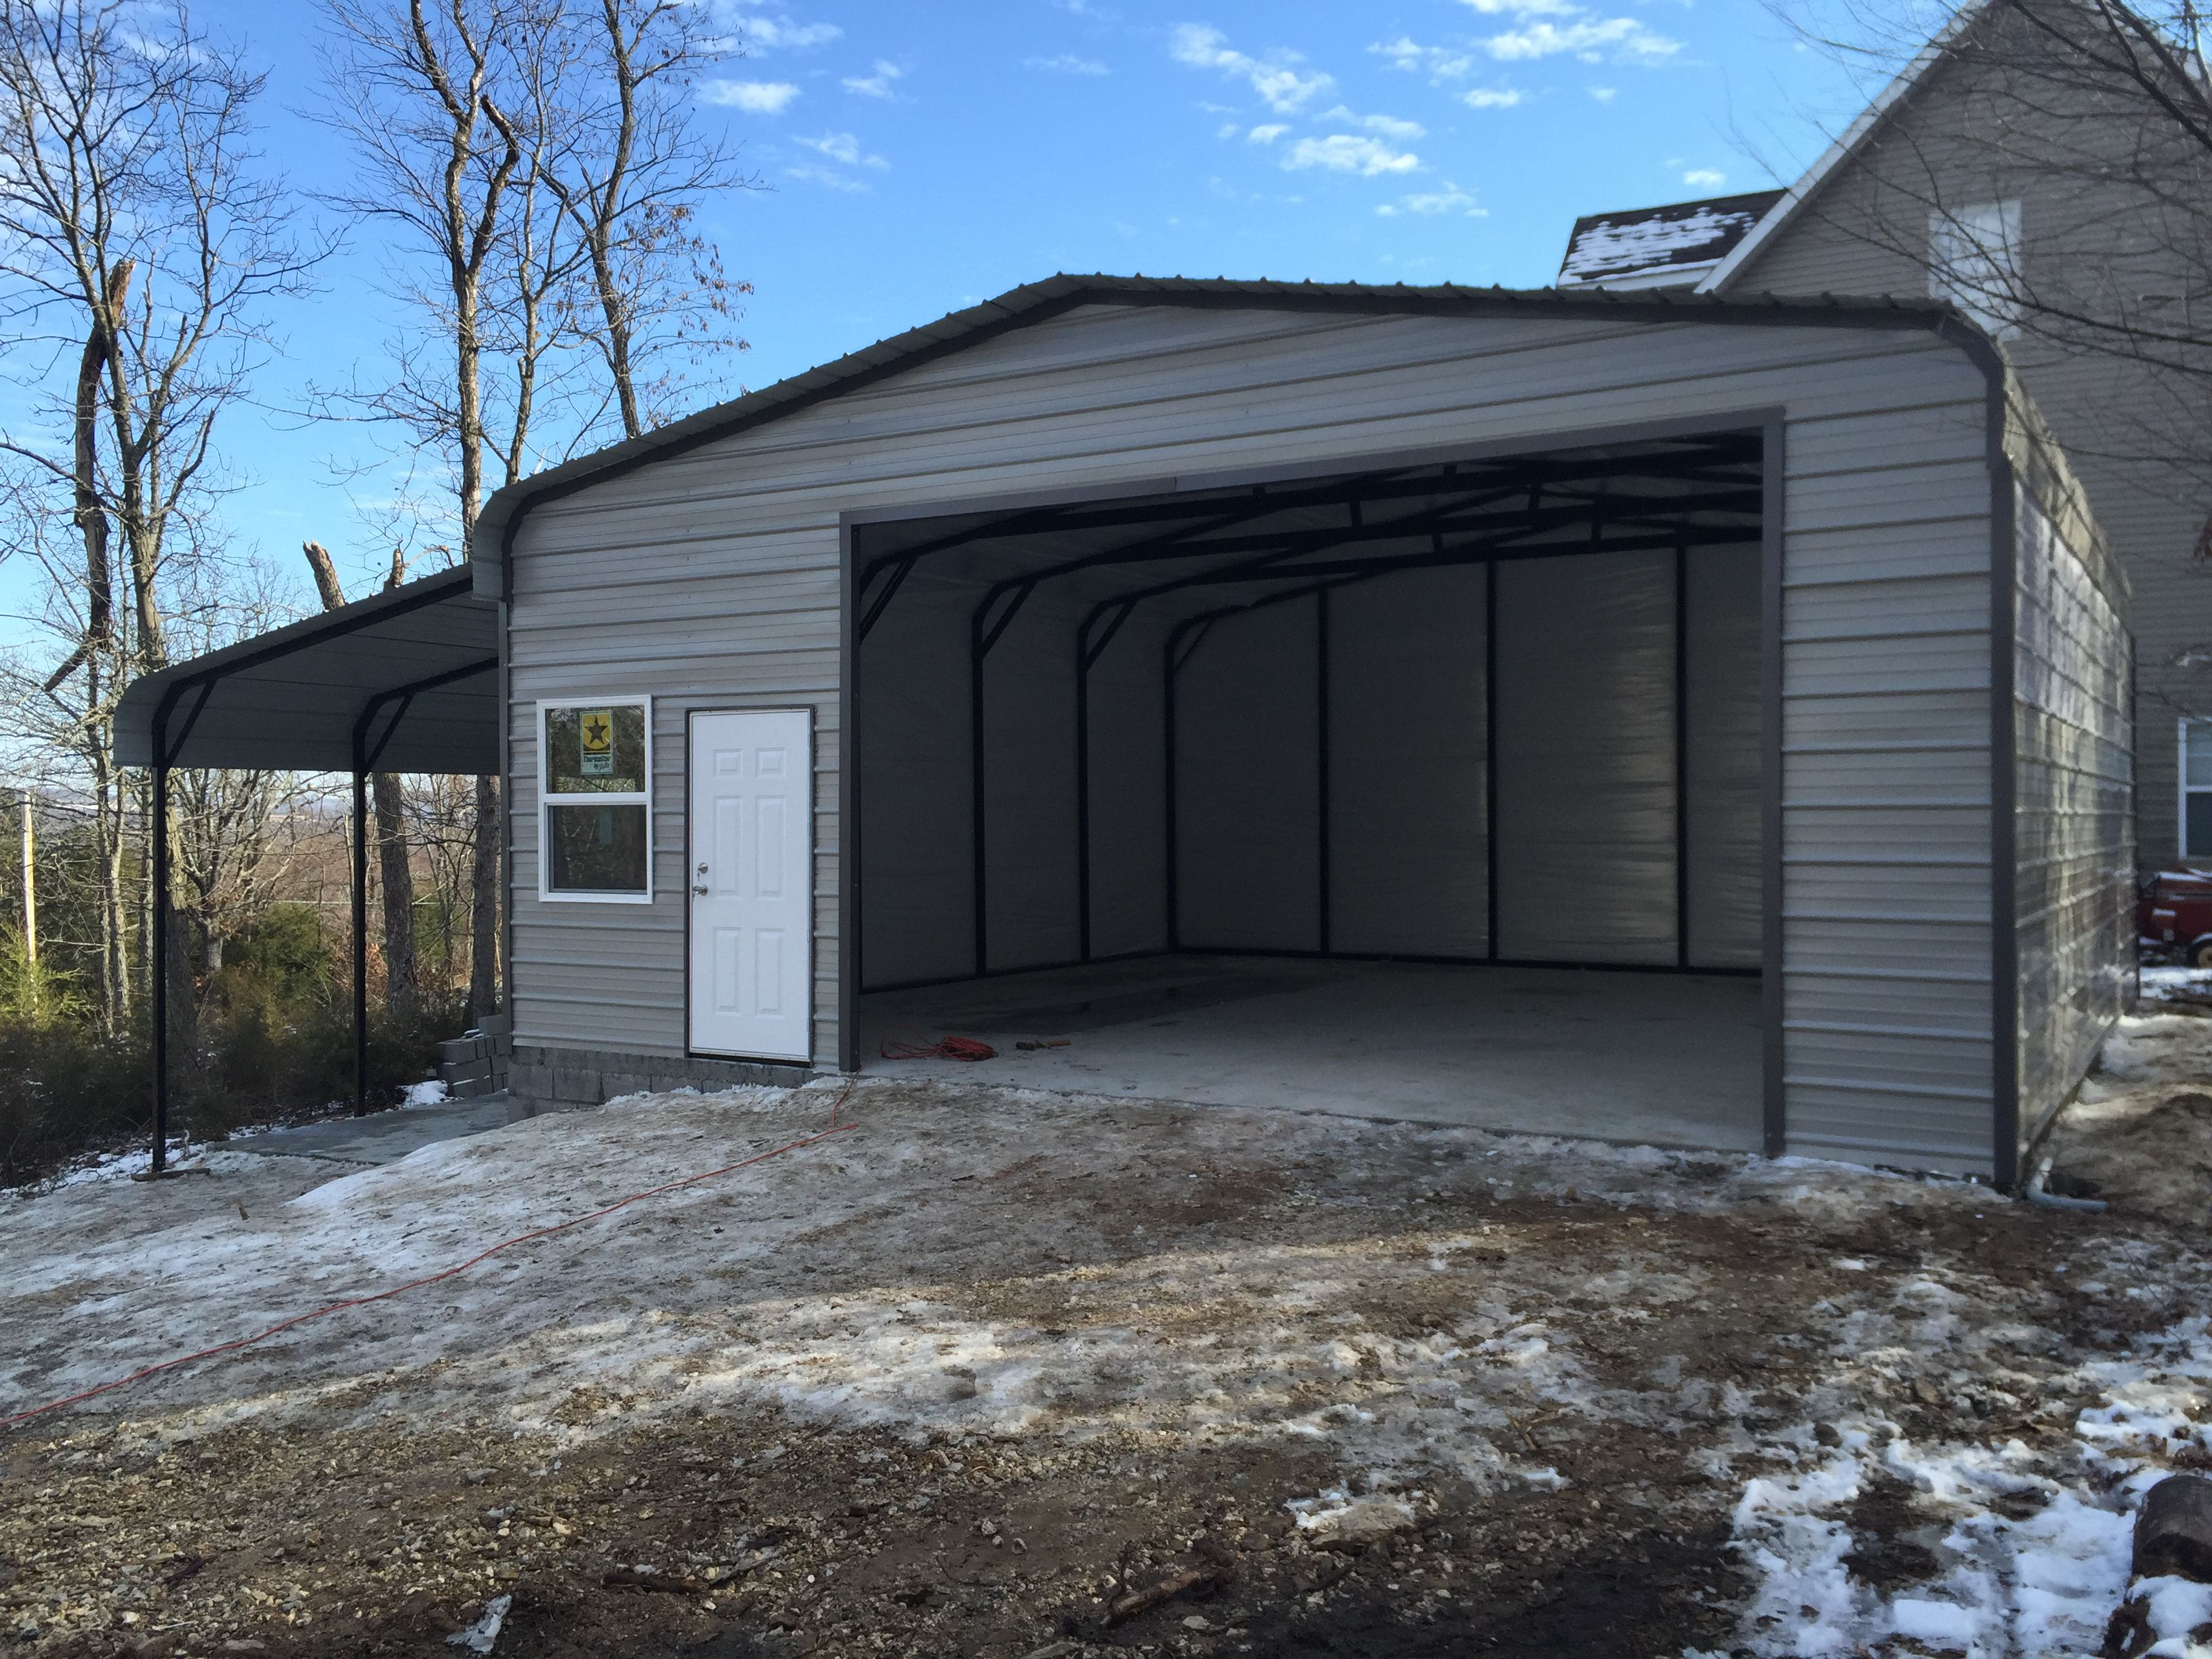 Cheap Carports Carport Garage Portable Carport Diy Carport Palram Carport Wood Carport House Carport Cheap Car With Images Diy Carport Carport Prices Carport Canopy